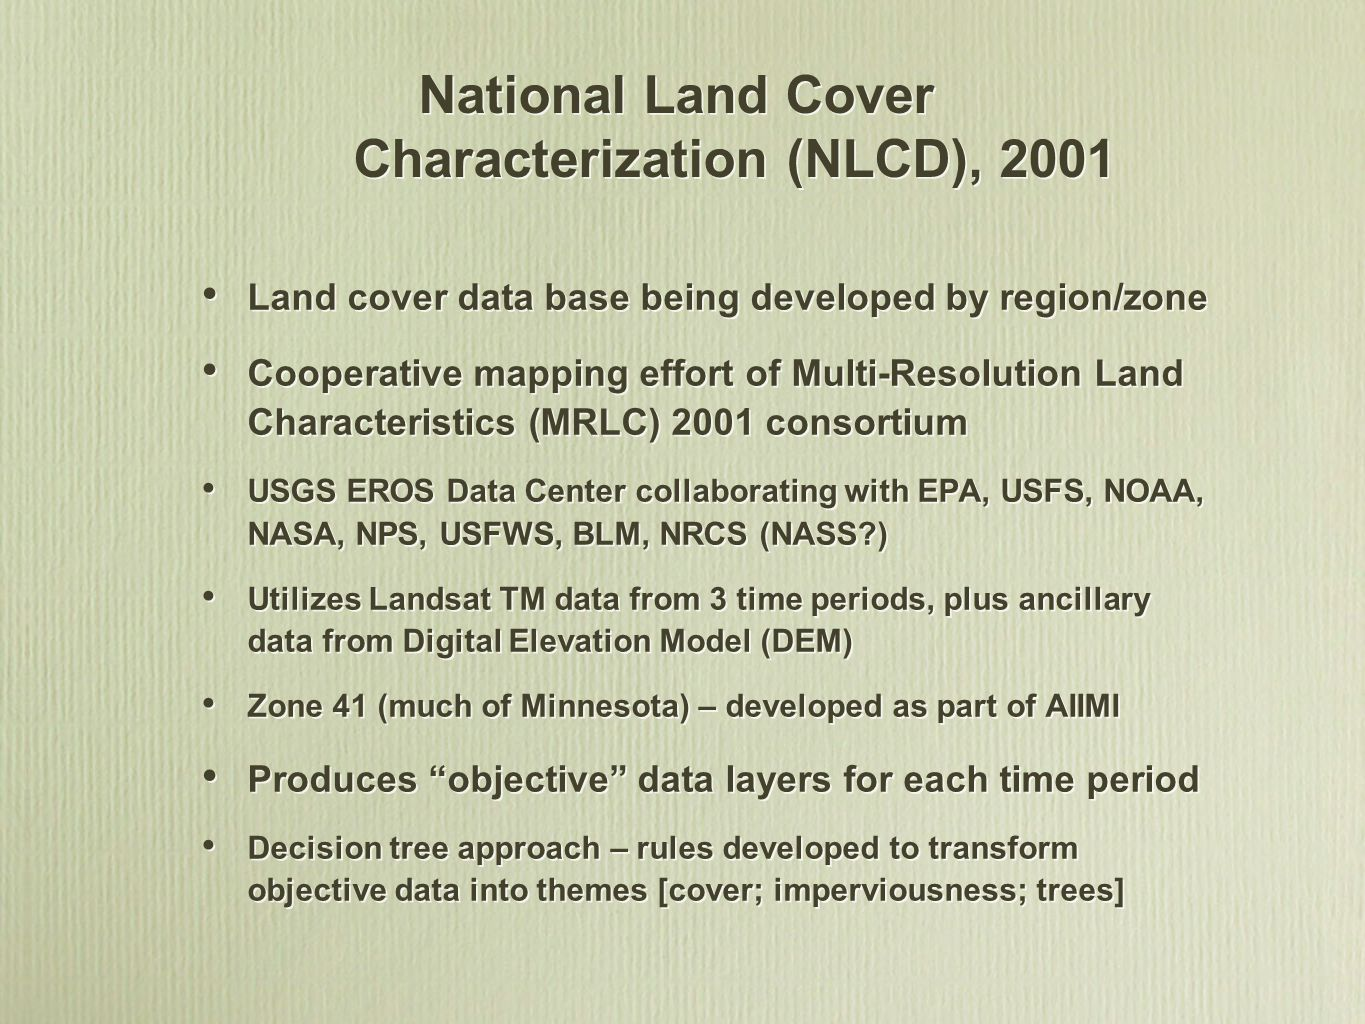 National Land Cover Characterization (NLCD), 2001